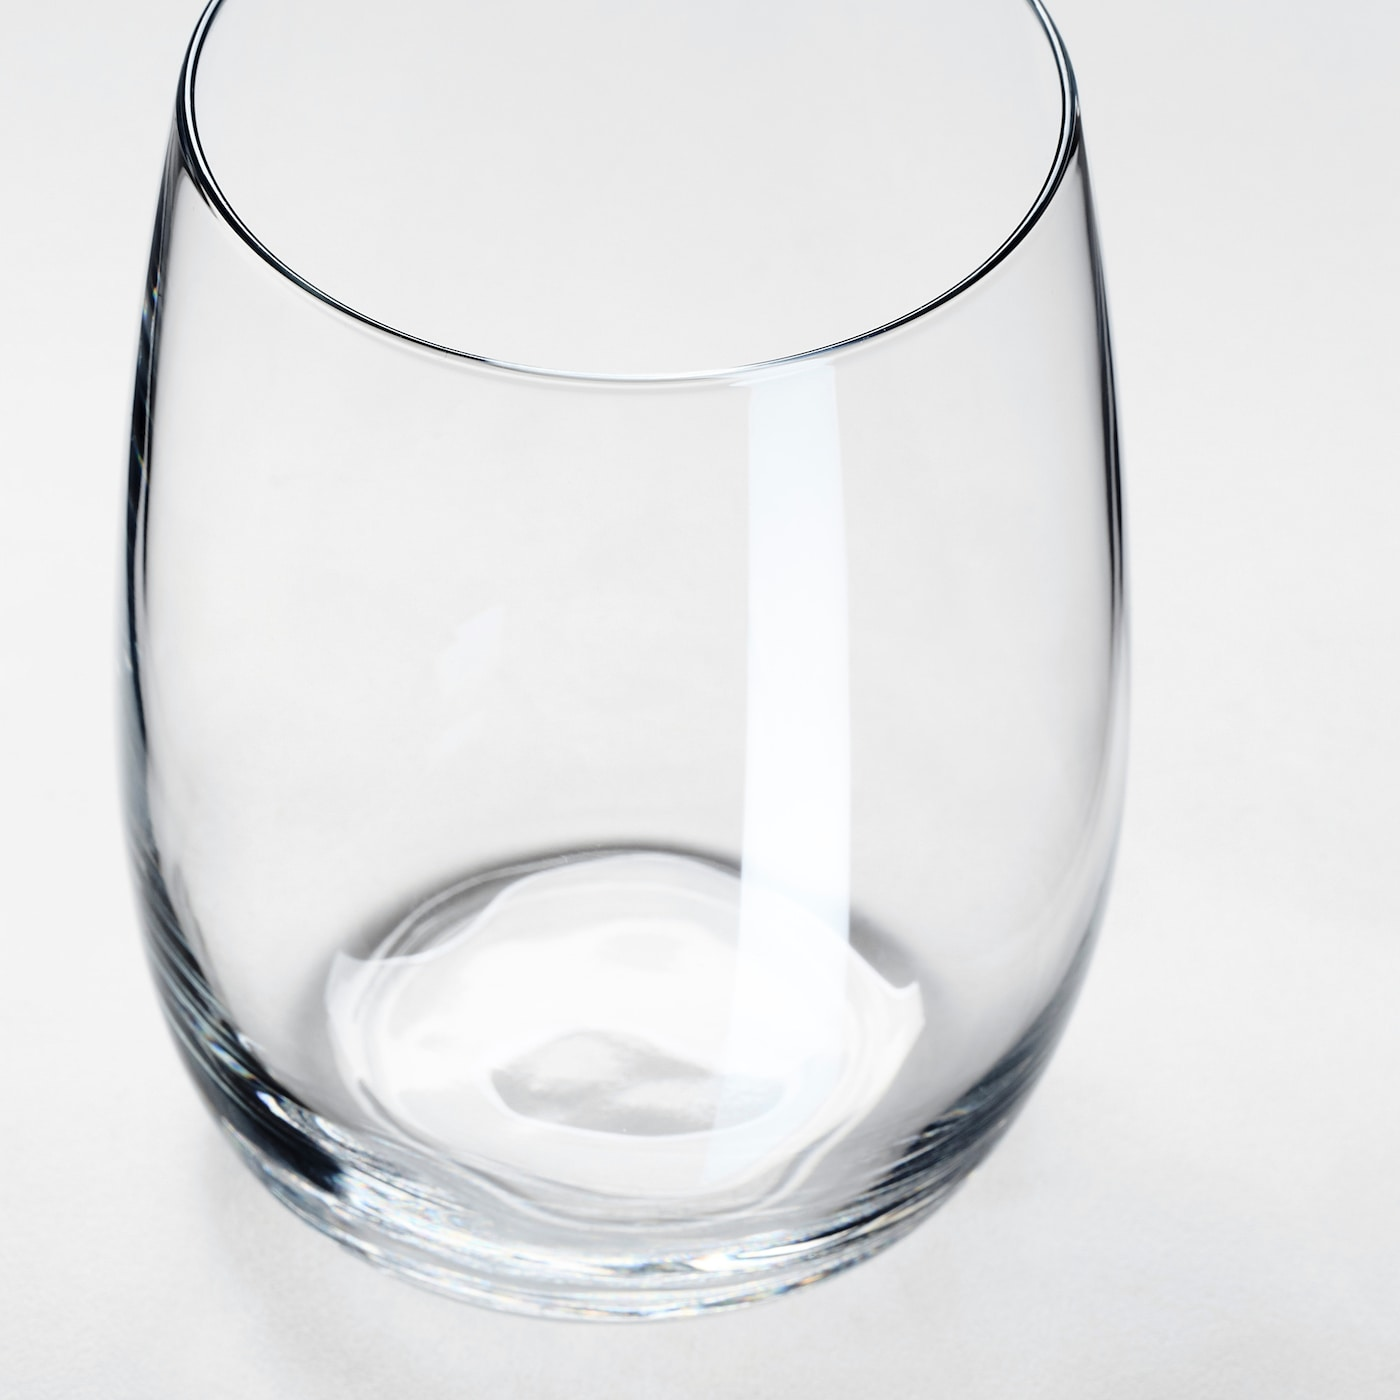 STORSINT glass clear glass 10 cm 37 cl 6 pack